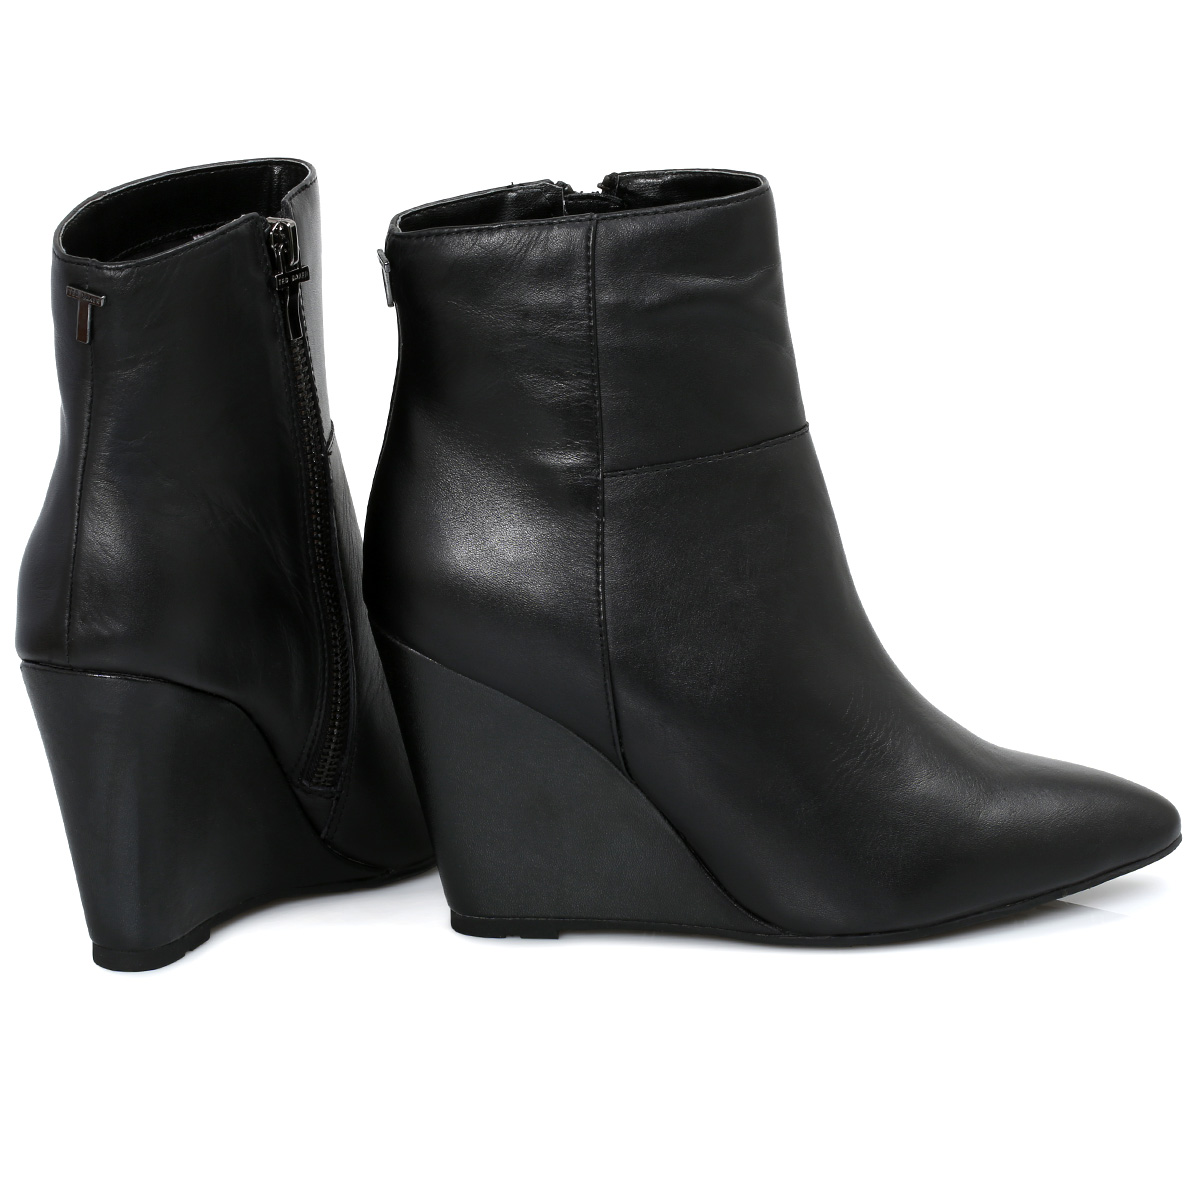 Ted Baker Black Leather Skovsa Womens Ankle Boots Shoes Size 3-8 ...